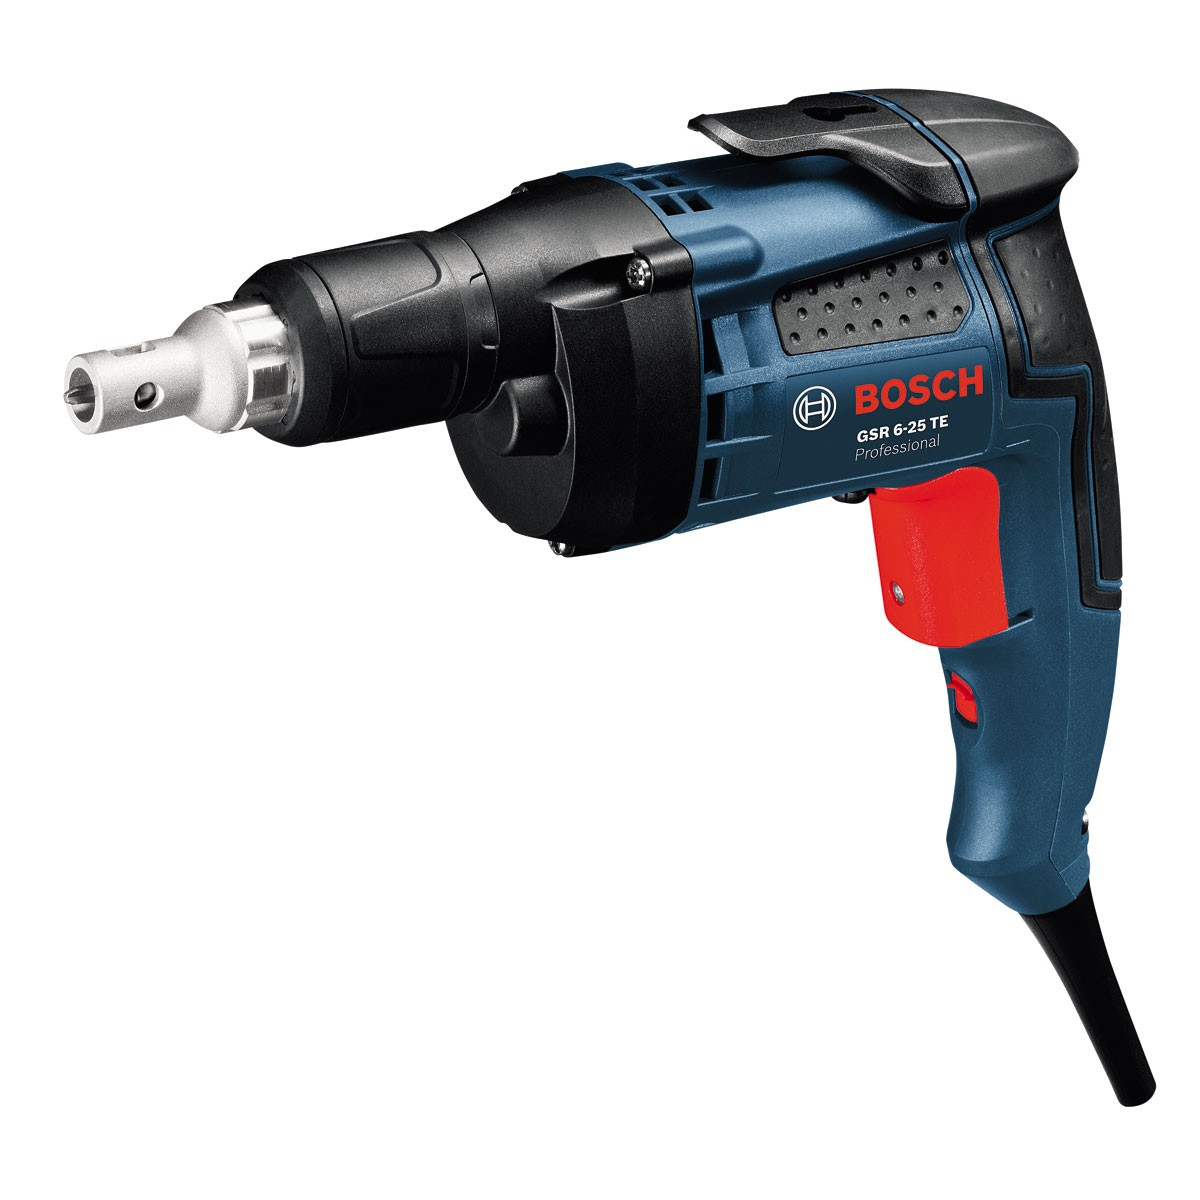 bosch gsr 6 25 te professional drywall screwdriver powertool world. Black Bedroom Furniture Sets. Home Design Ideas